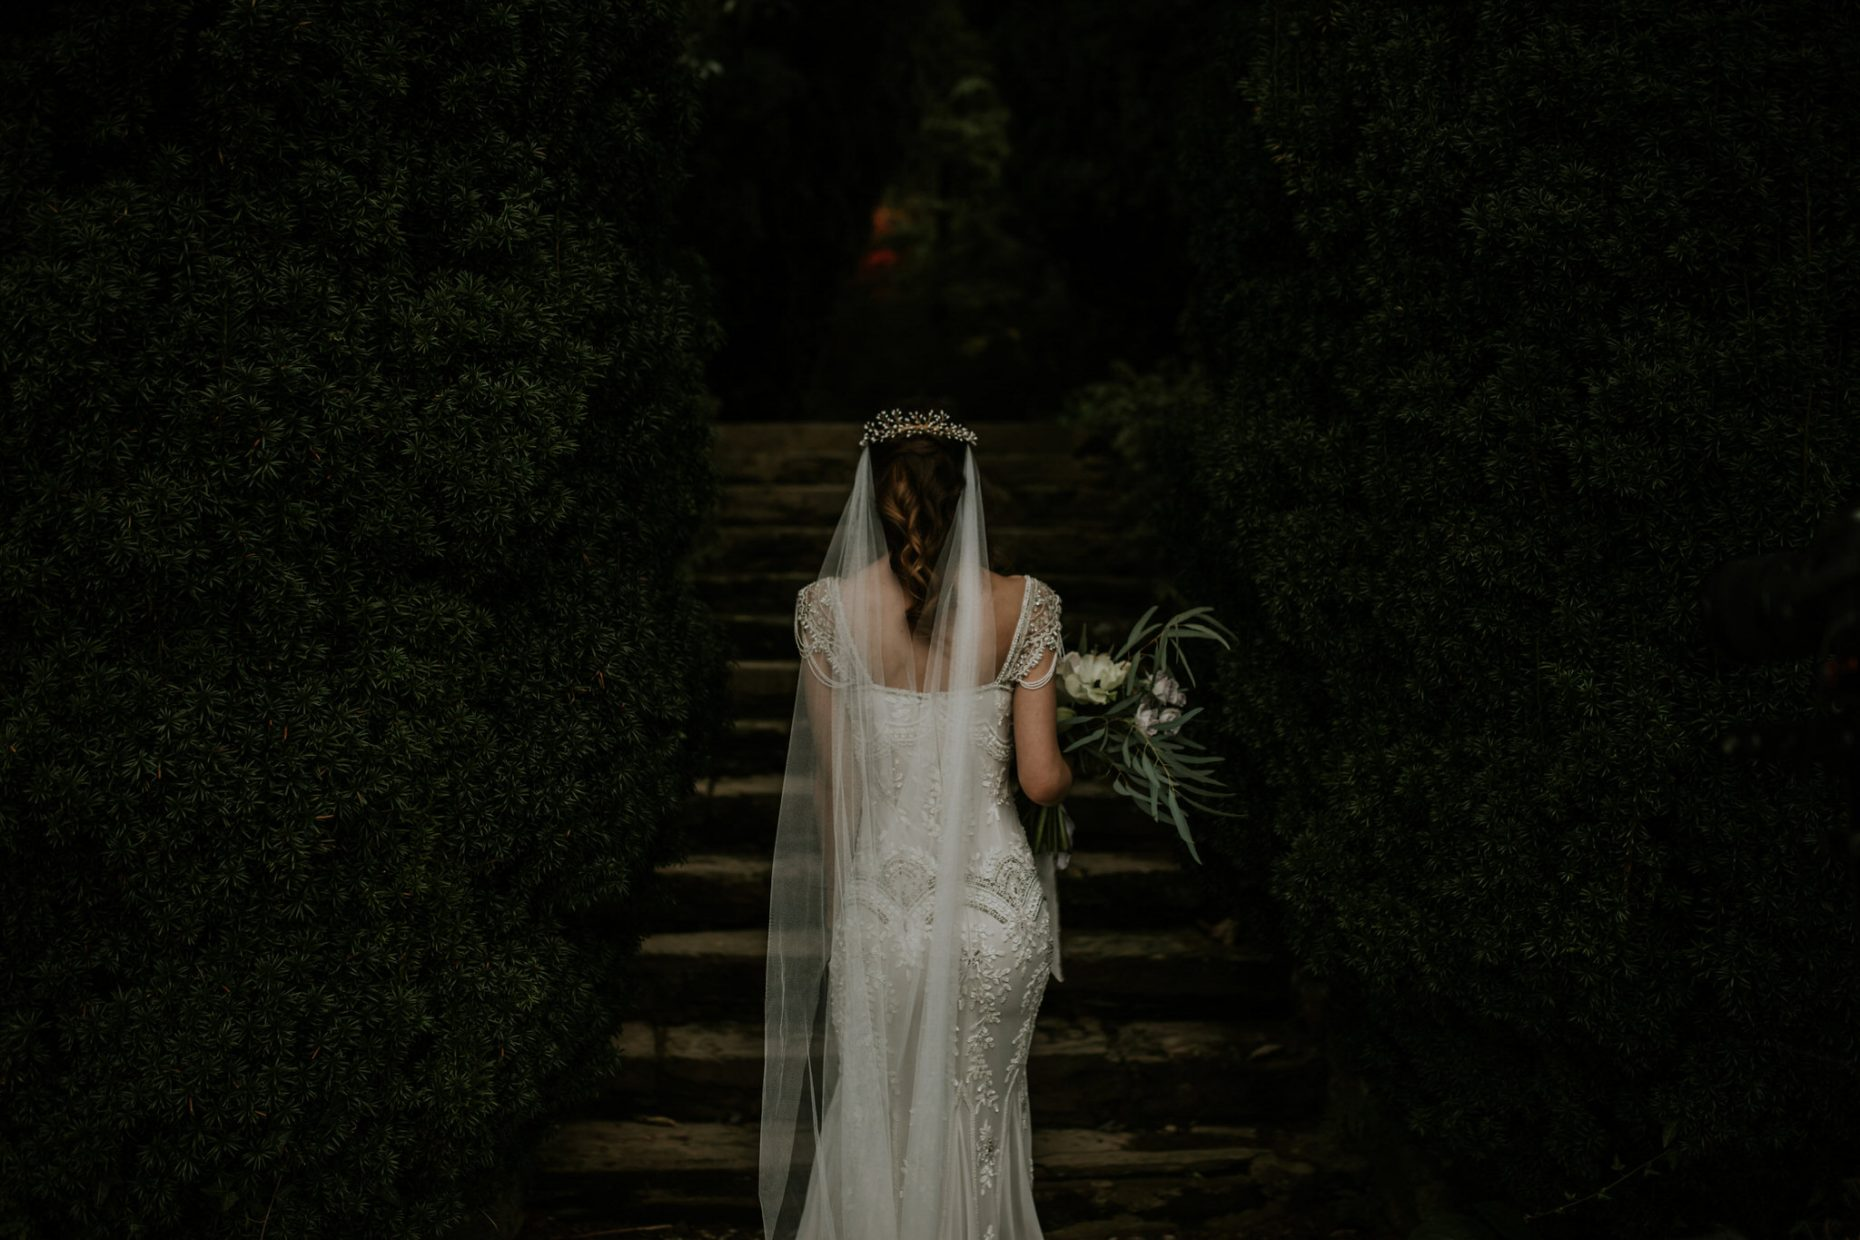 Wedding photographer in Cornwall, a bride is walking up the stairs with a huge bunch of wild flowers in her hair and the veil down her back